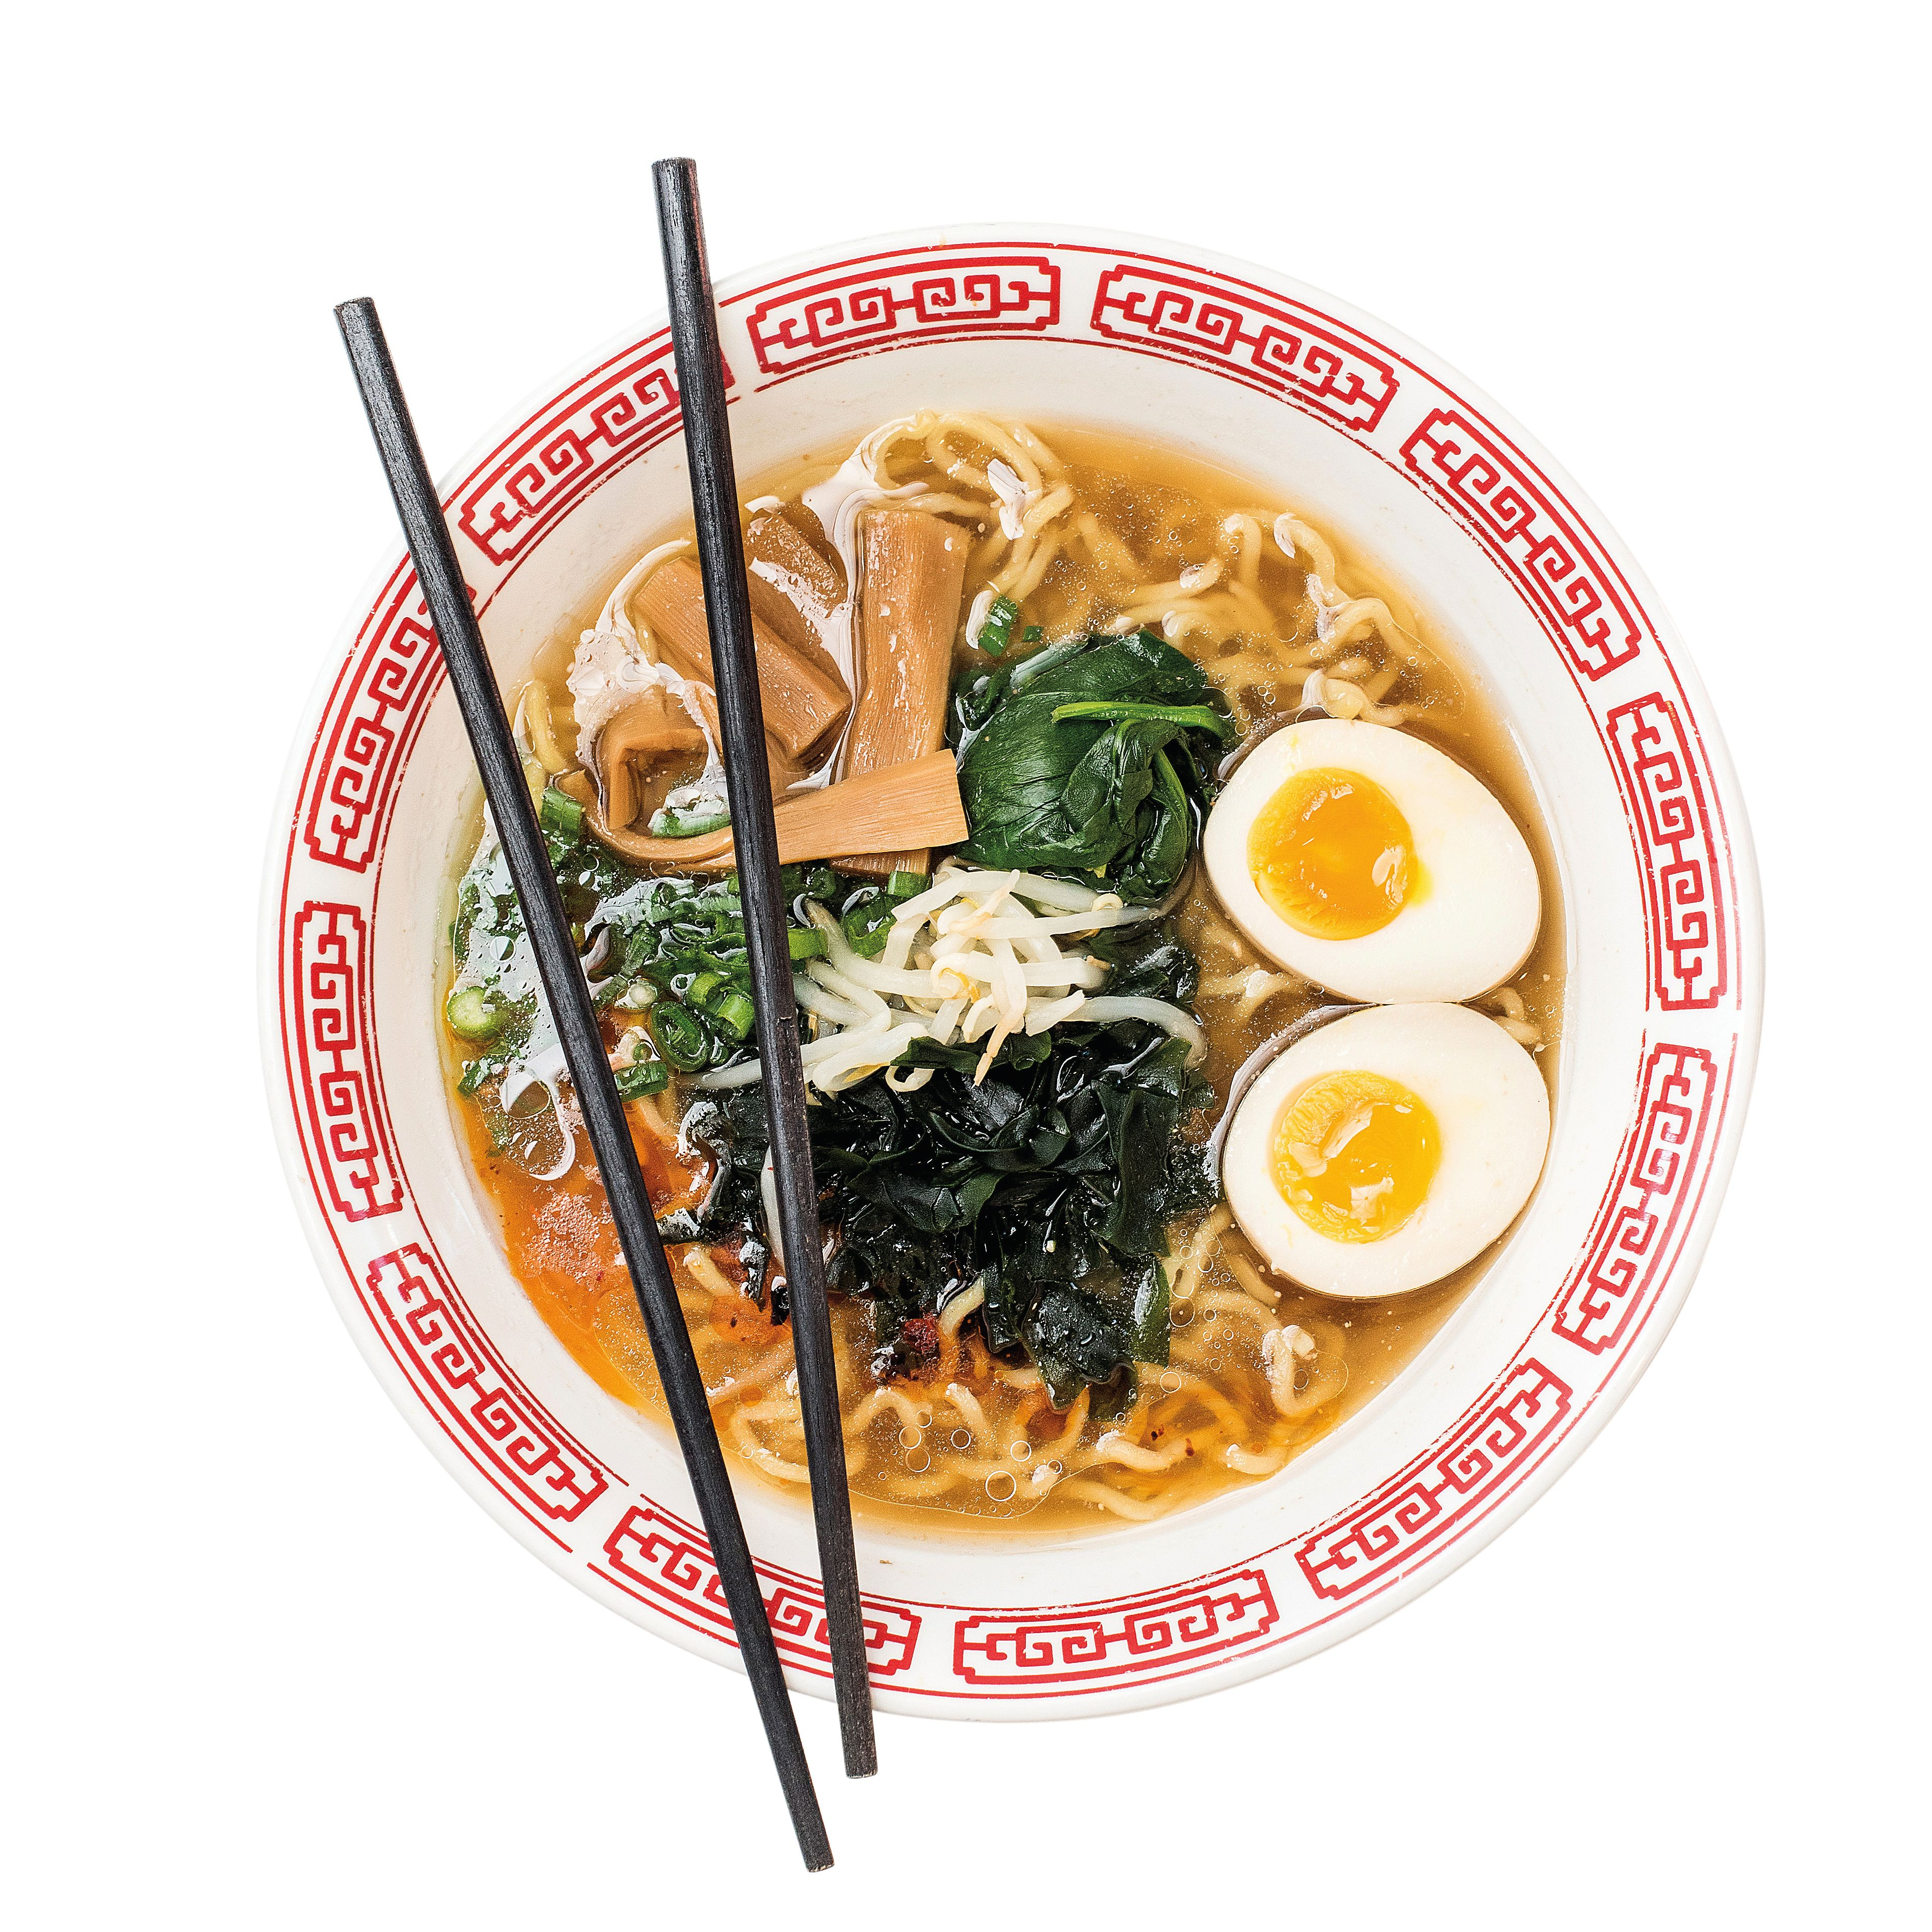 Pmha 16 dining boundary noraneko vegetable ramen rrr6zj